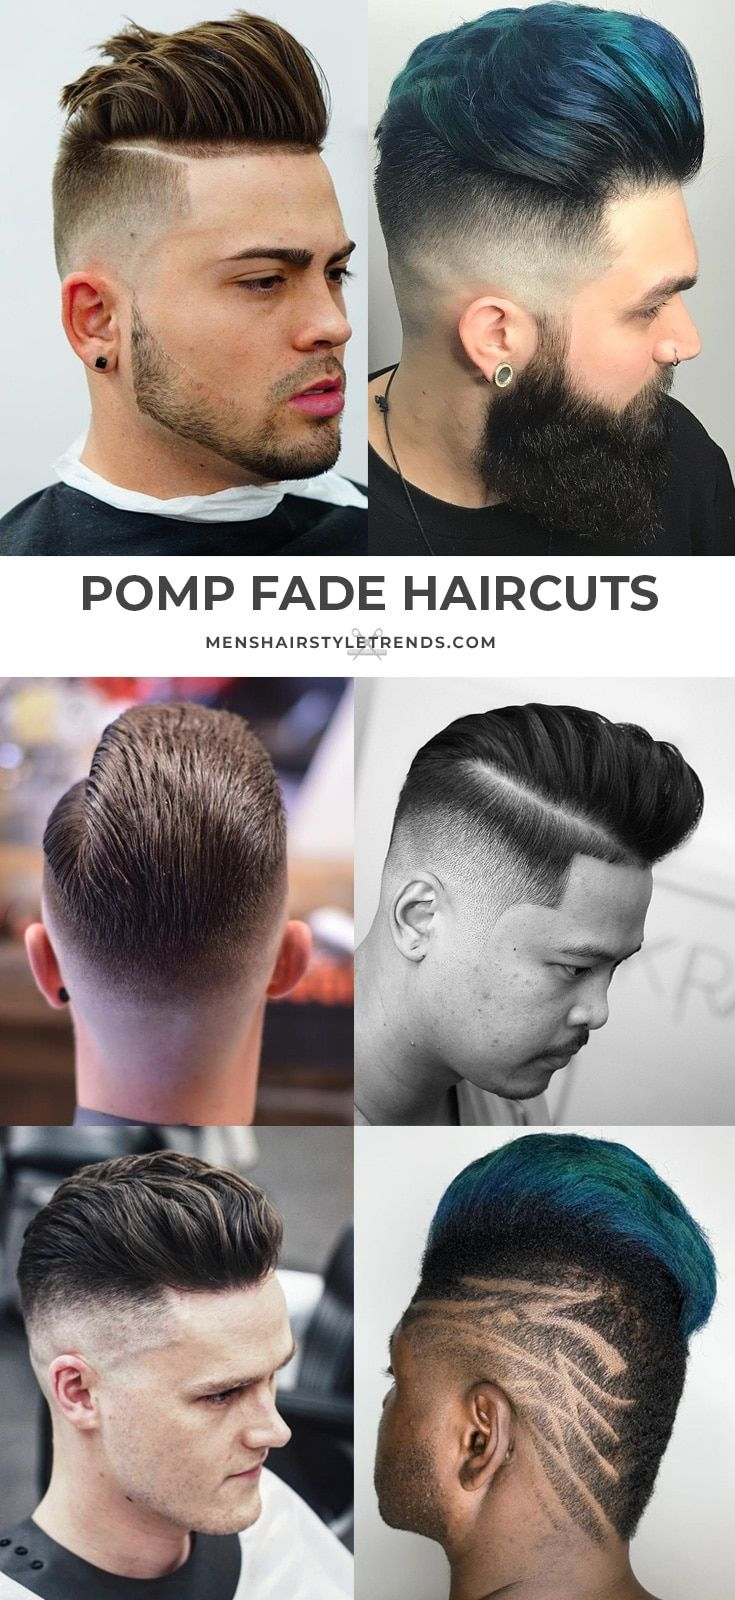 Different types of fade haircuts for men modern pompadour haircuts  hairstyles  modern pompadour haircuts